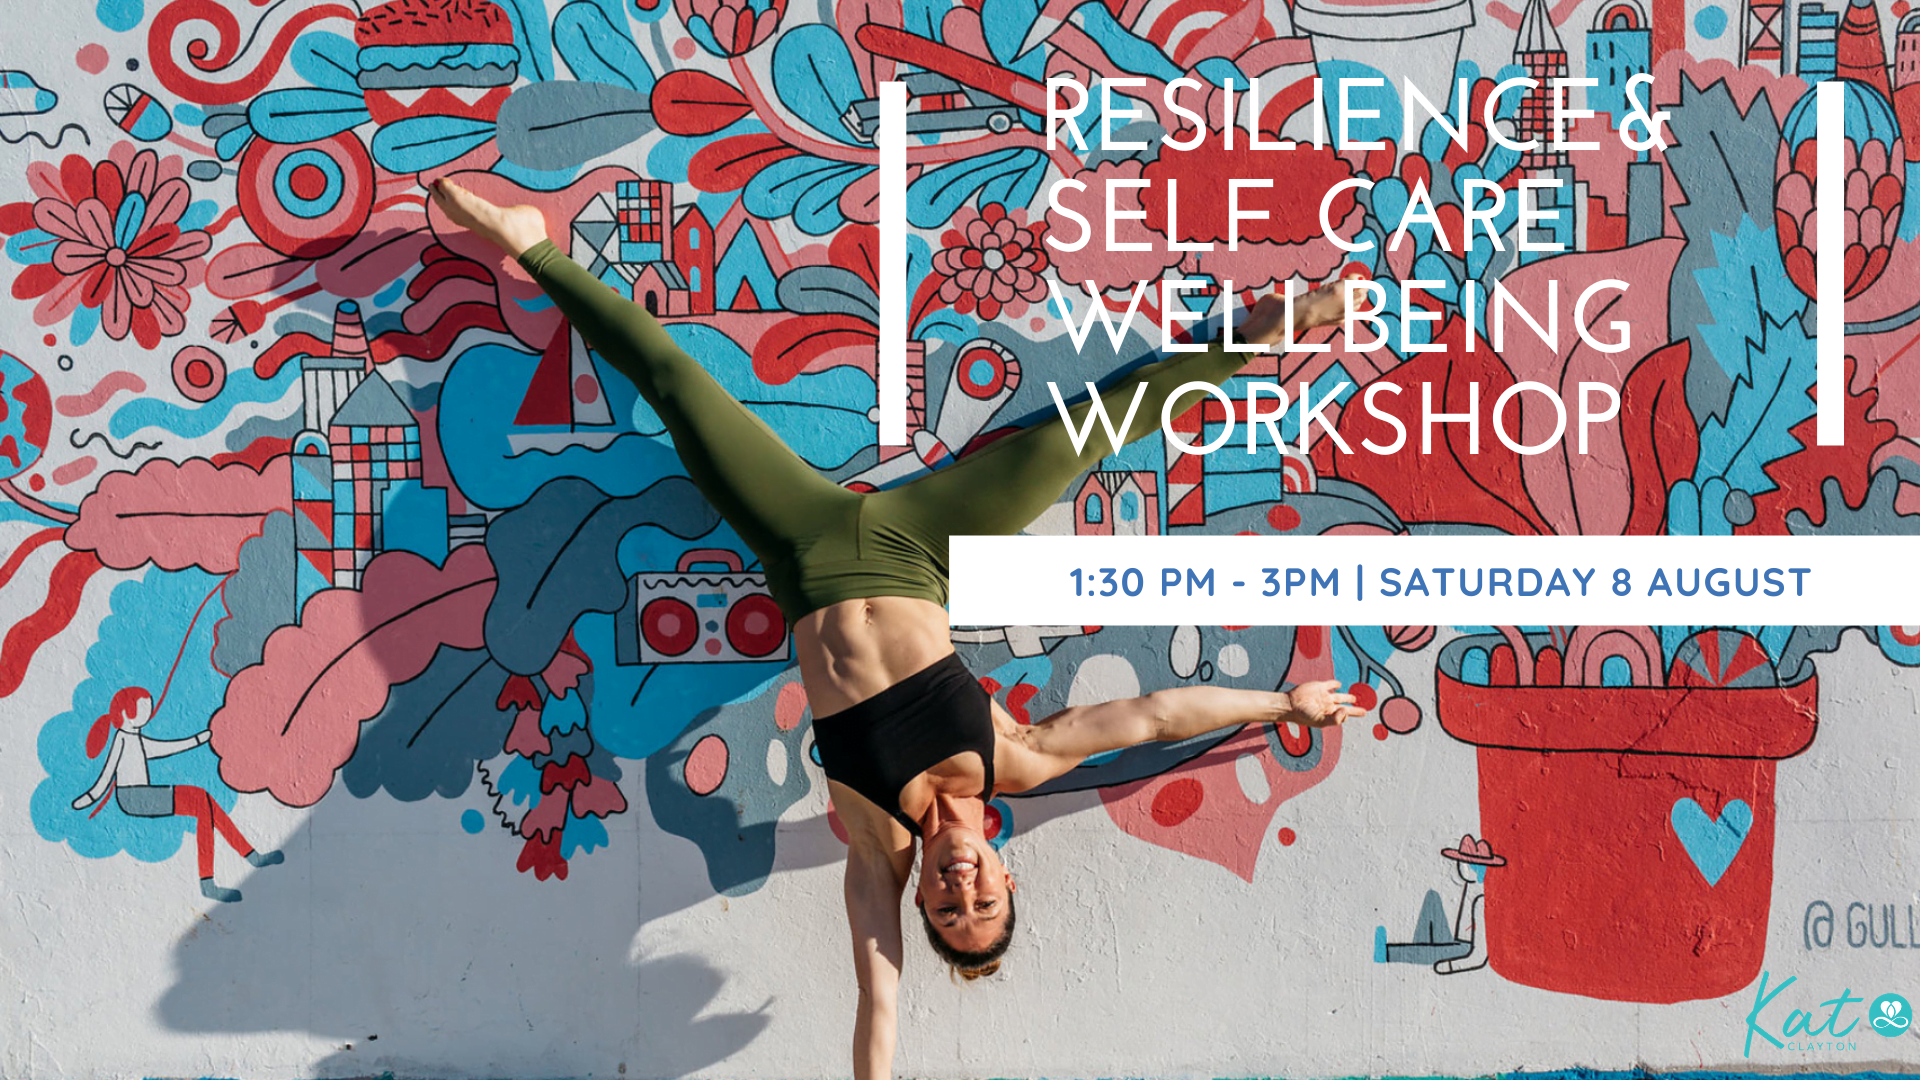 Resilience Self Care Wellbeing Workshop